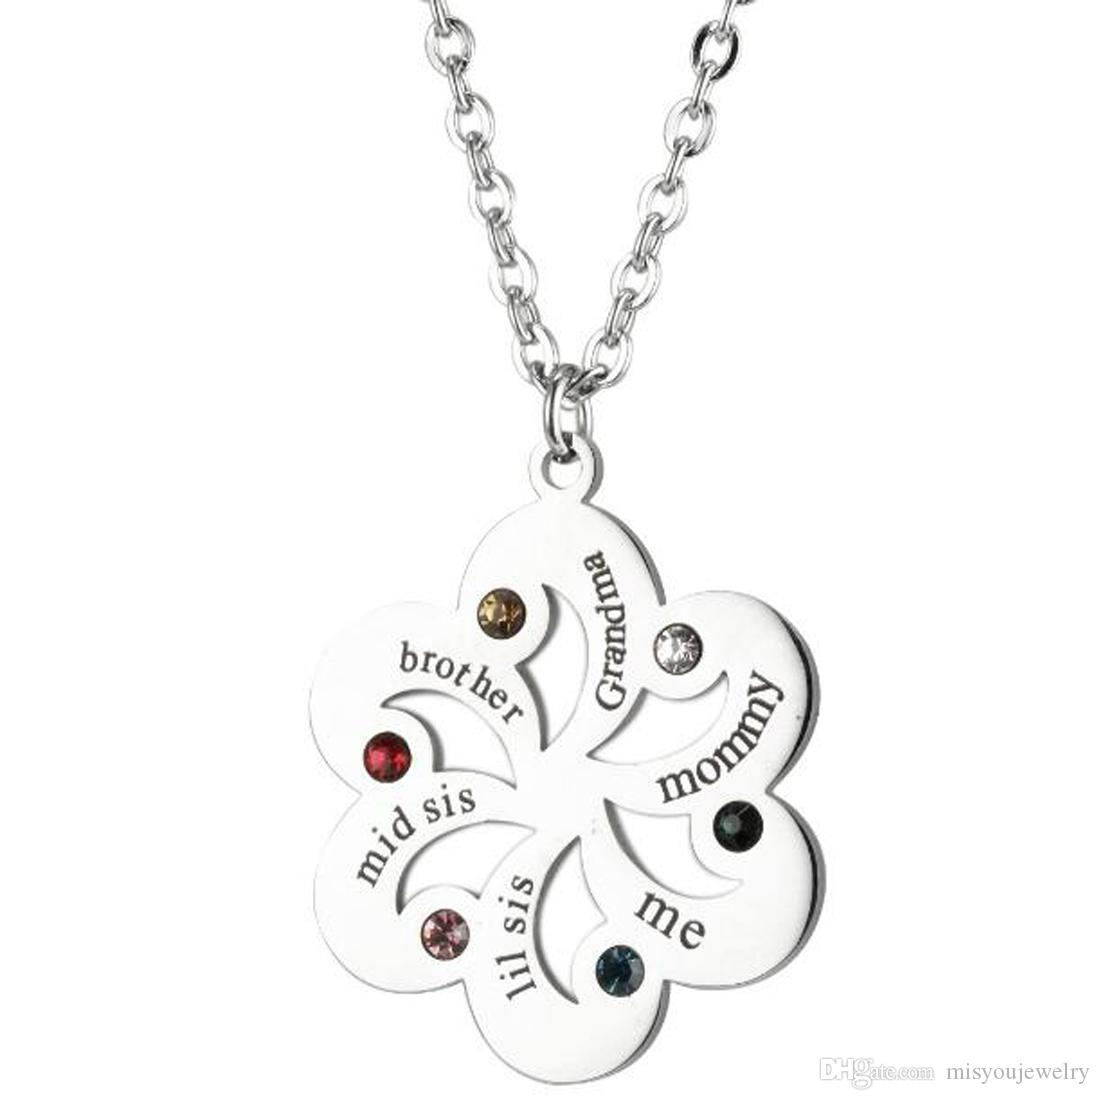 Stainless Silver Birthstone Pendant Engraved name Jewelry Circle flower Necklace - Custom Made Pendant Any Name for family